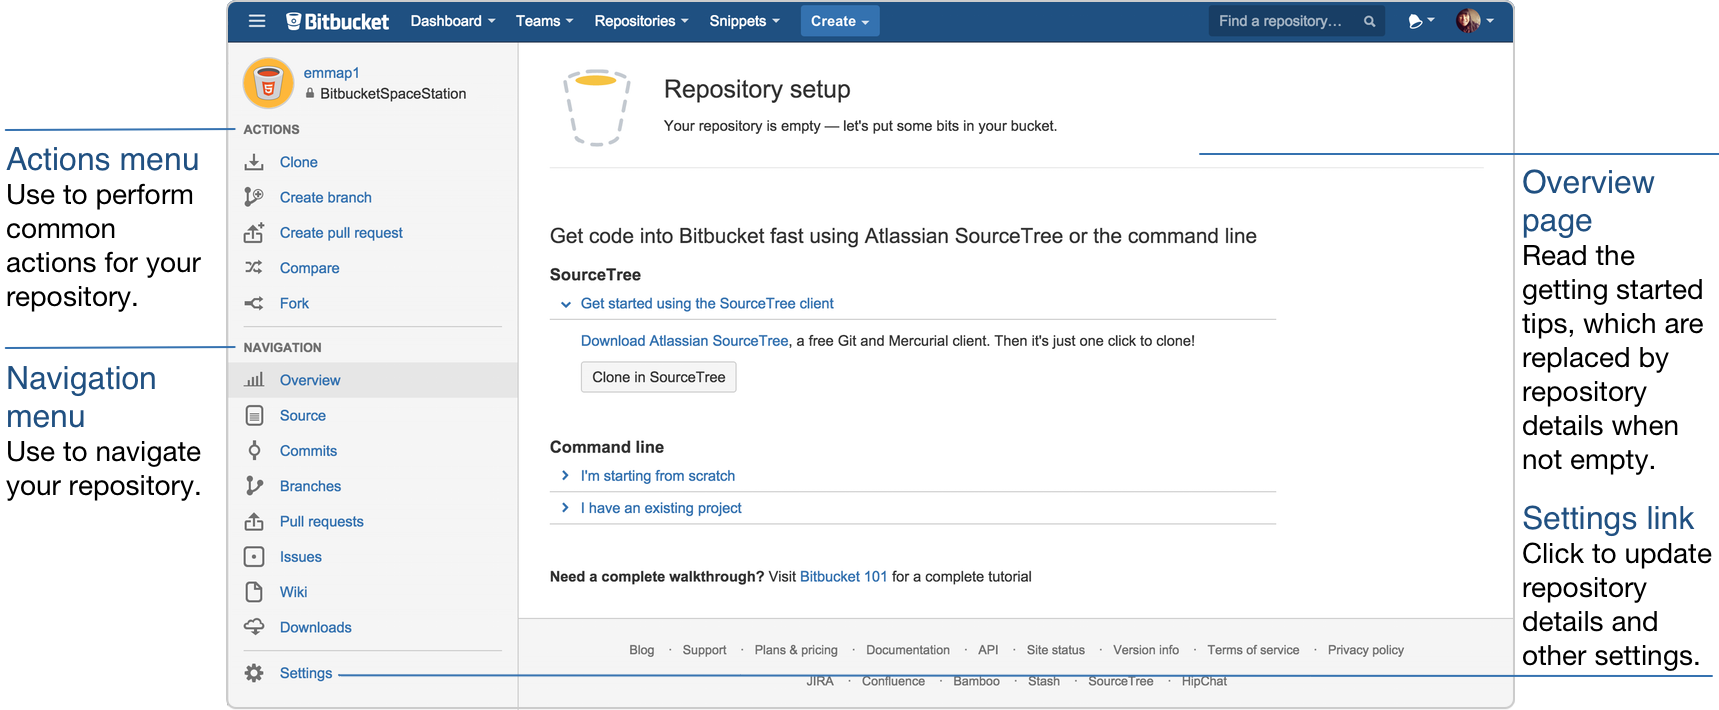 https://confluence.atlassian.com/bitbucket/files/304578655/753435775/3/1449240130583/explore_repository.png